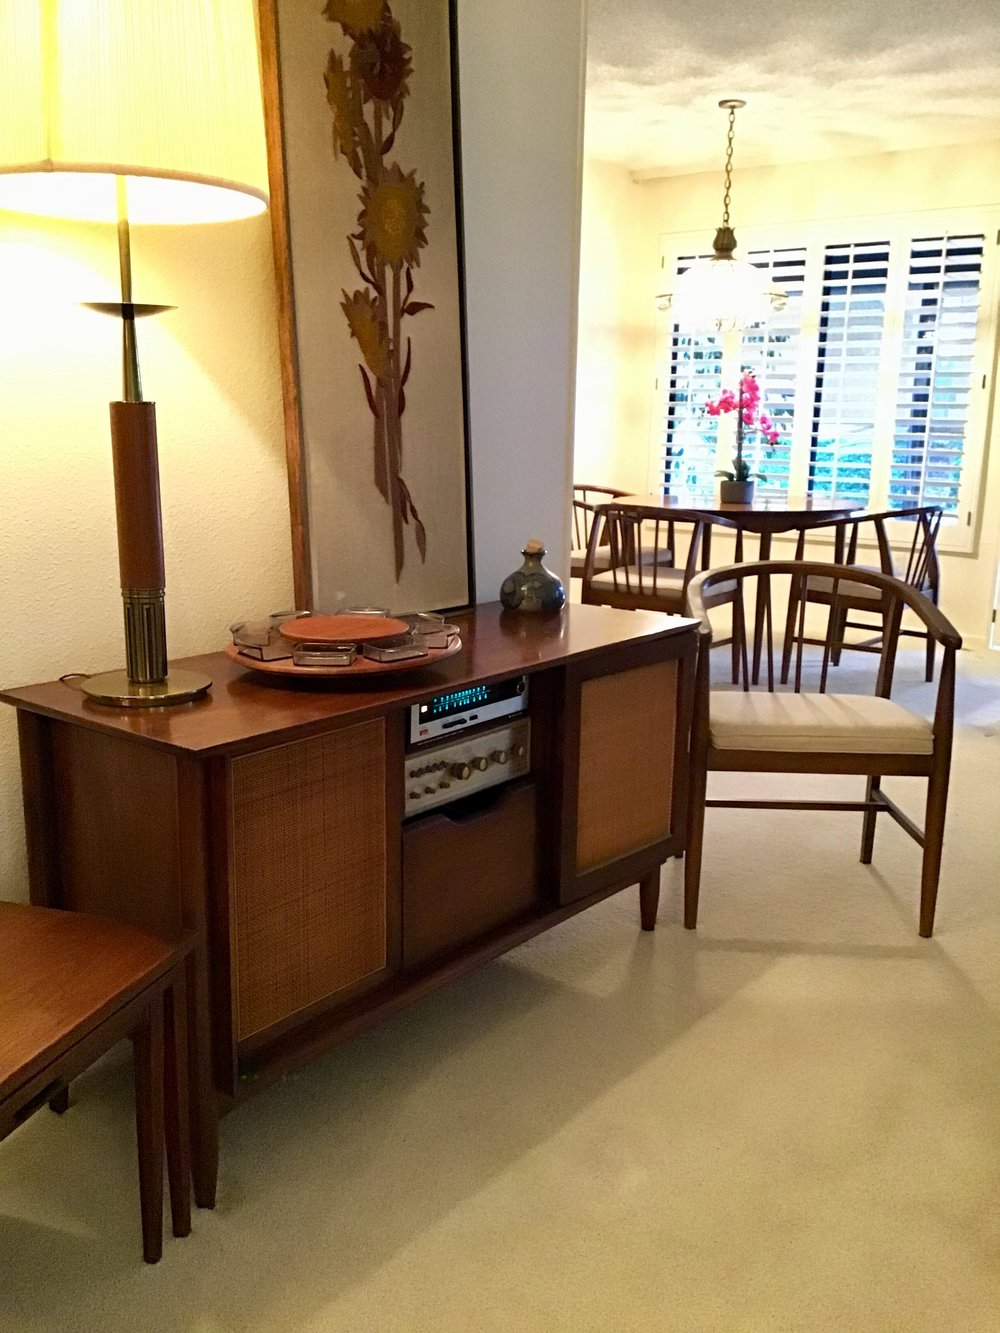 Rancho Bernardo Estate Sale - 12787 Camino EmparradoSan Diego, CA 92128Sat Dec 8 • 8am - 2pmSun Dec 9 • 8am - 1pmDescription: If Mid-Century modern furniture is your thing, this is the sale for you! Two dining table sets, Pristine Ampex stereo cabinet, Mid-Century lamps & art. Tommy Bahama buffet. Fully stocked kitchen including food processor's, mixers, gorgeous plate ware, glassware, & kitchen gadgets galore. Like new leather couch set. Closets full of designer clothes, purses & shoes. A garden of flower pots, benches, & patio furniture.